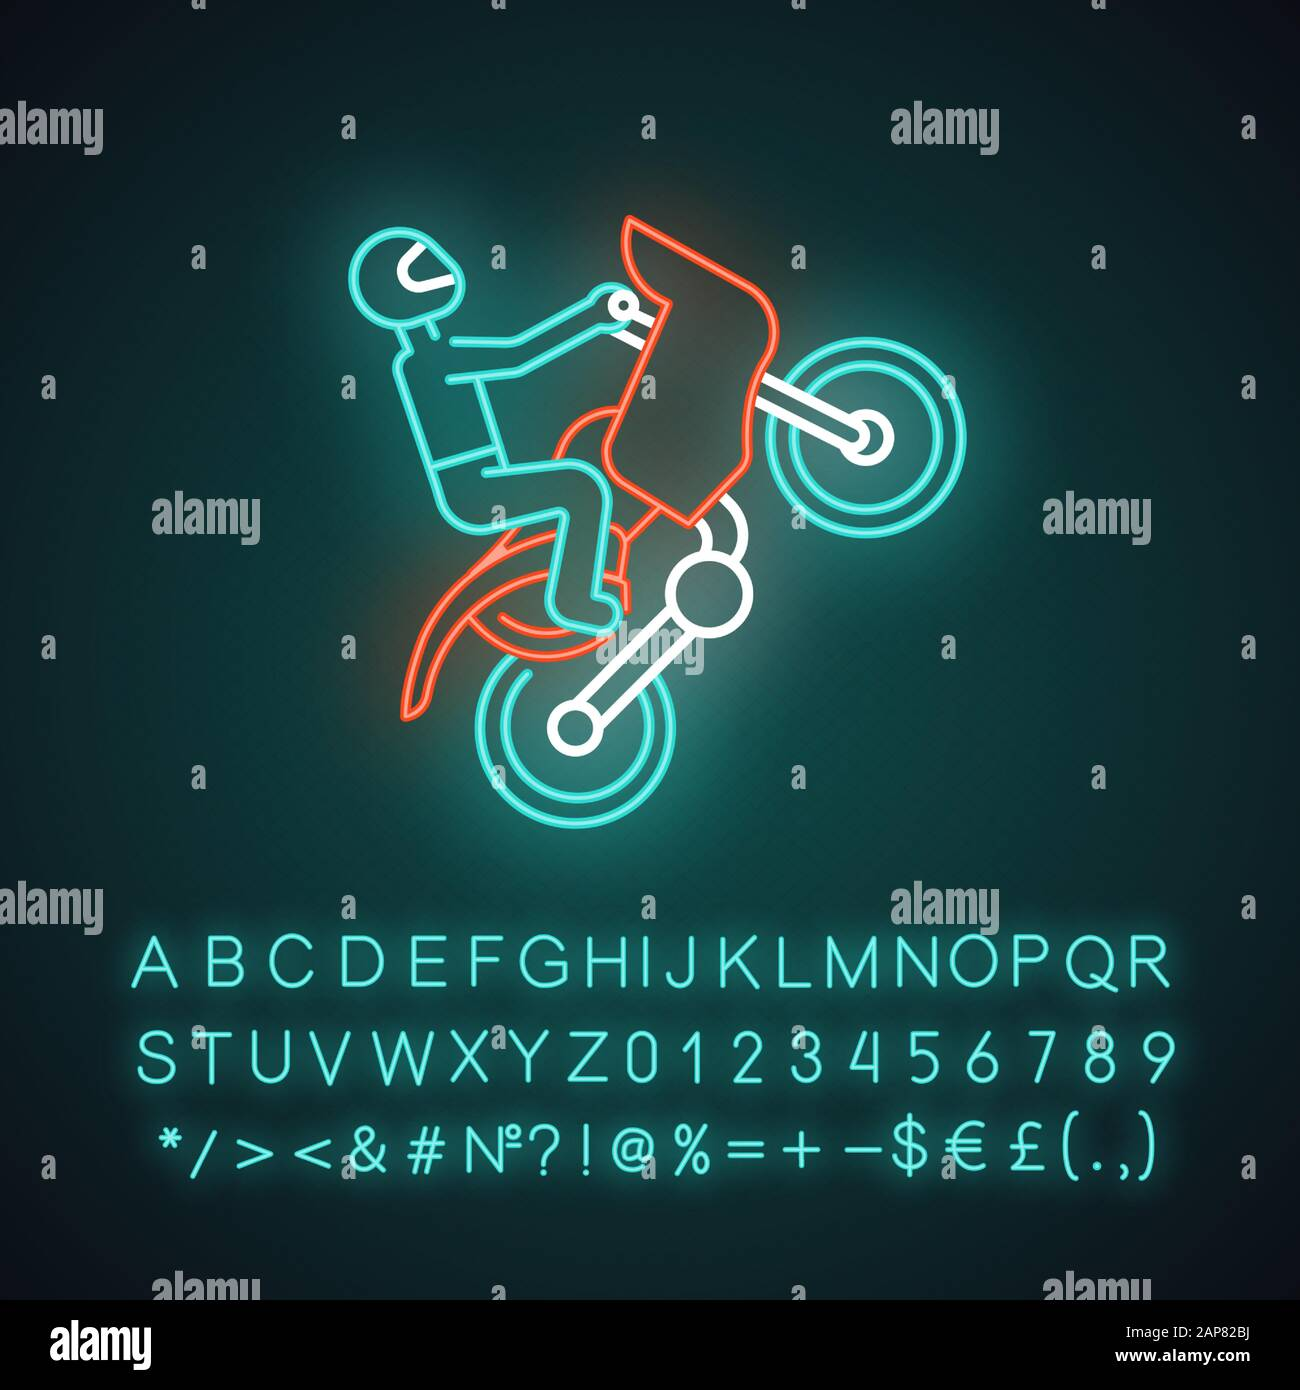 Motorcycling Neon Light Icon Track Road Rally Speedway Motocross Racing Person Performing Motorbiking Stunt Glowing Sign With Alphabet Numbers Stock Vector Image Art Alamy